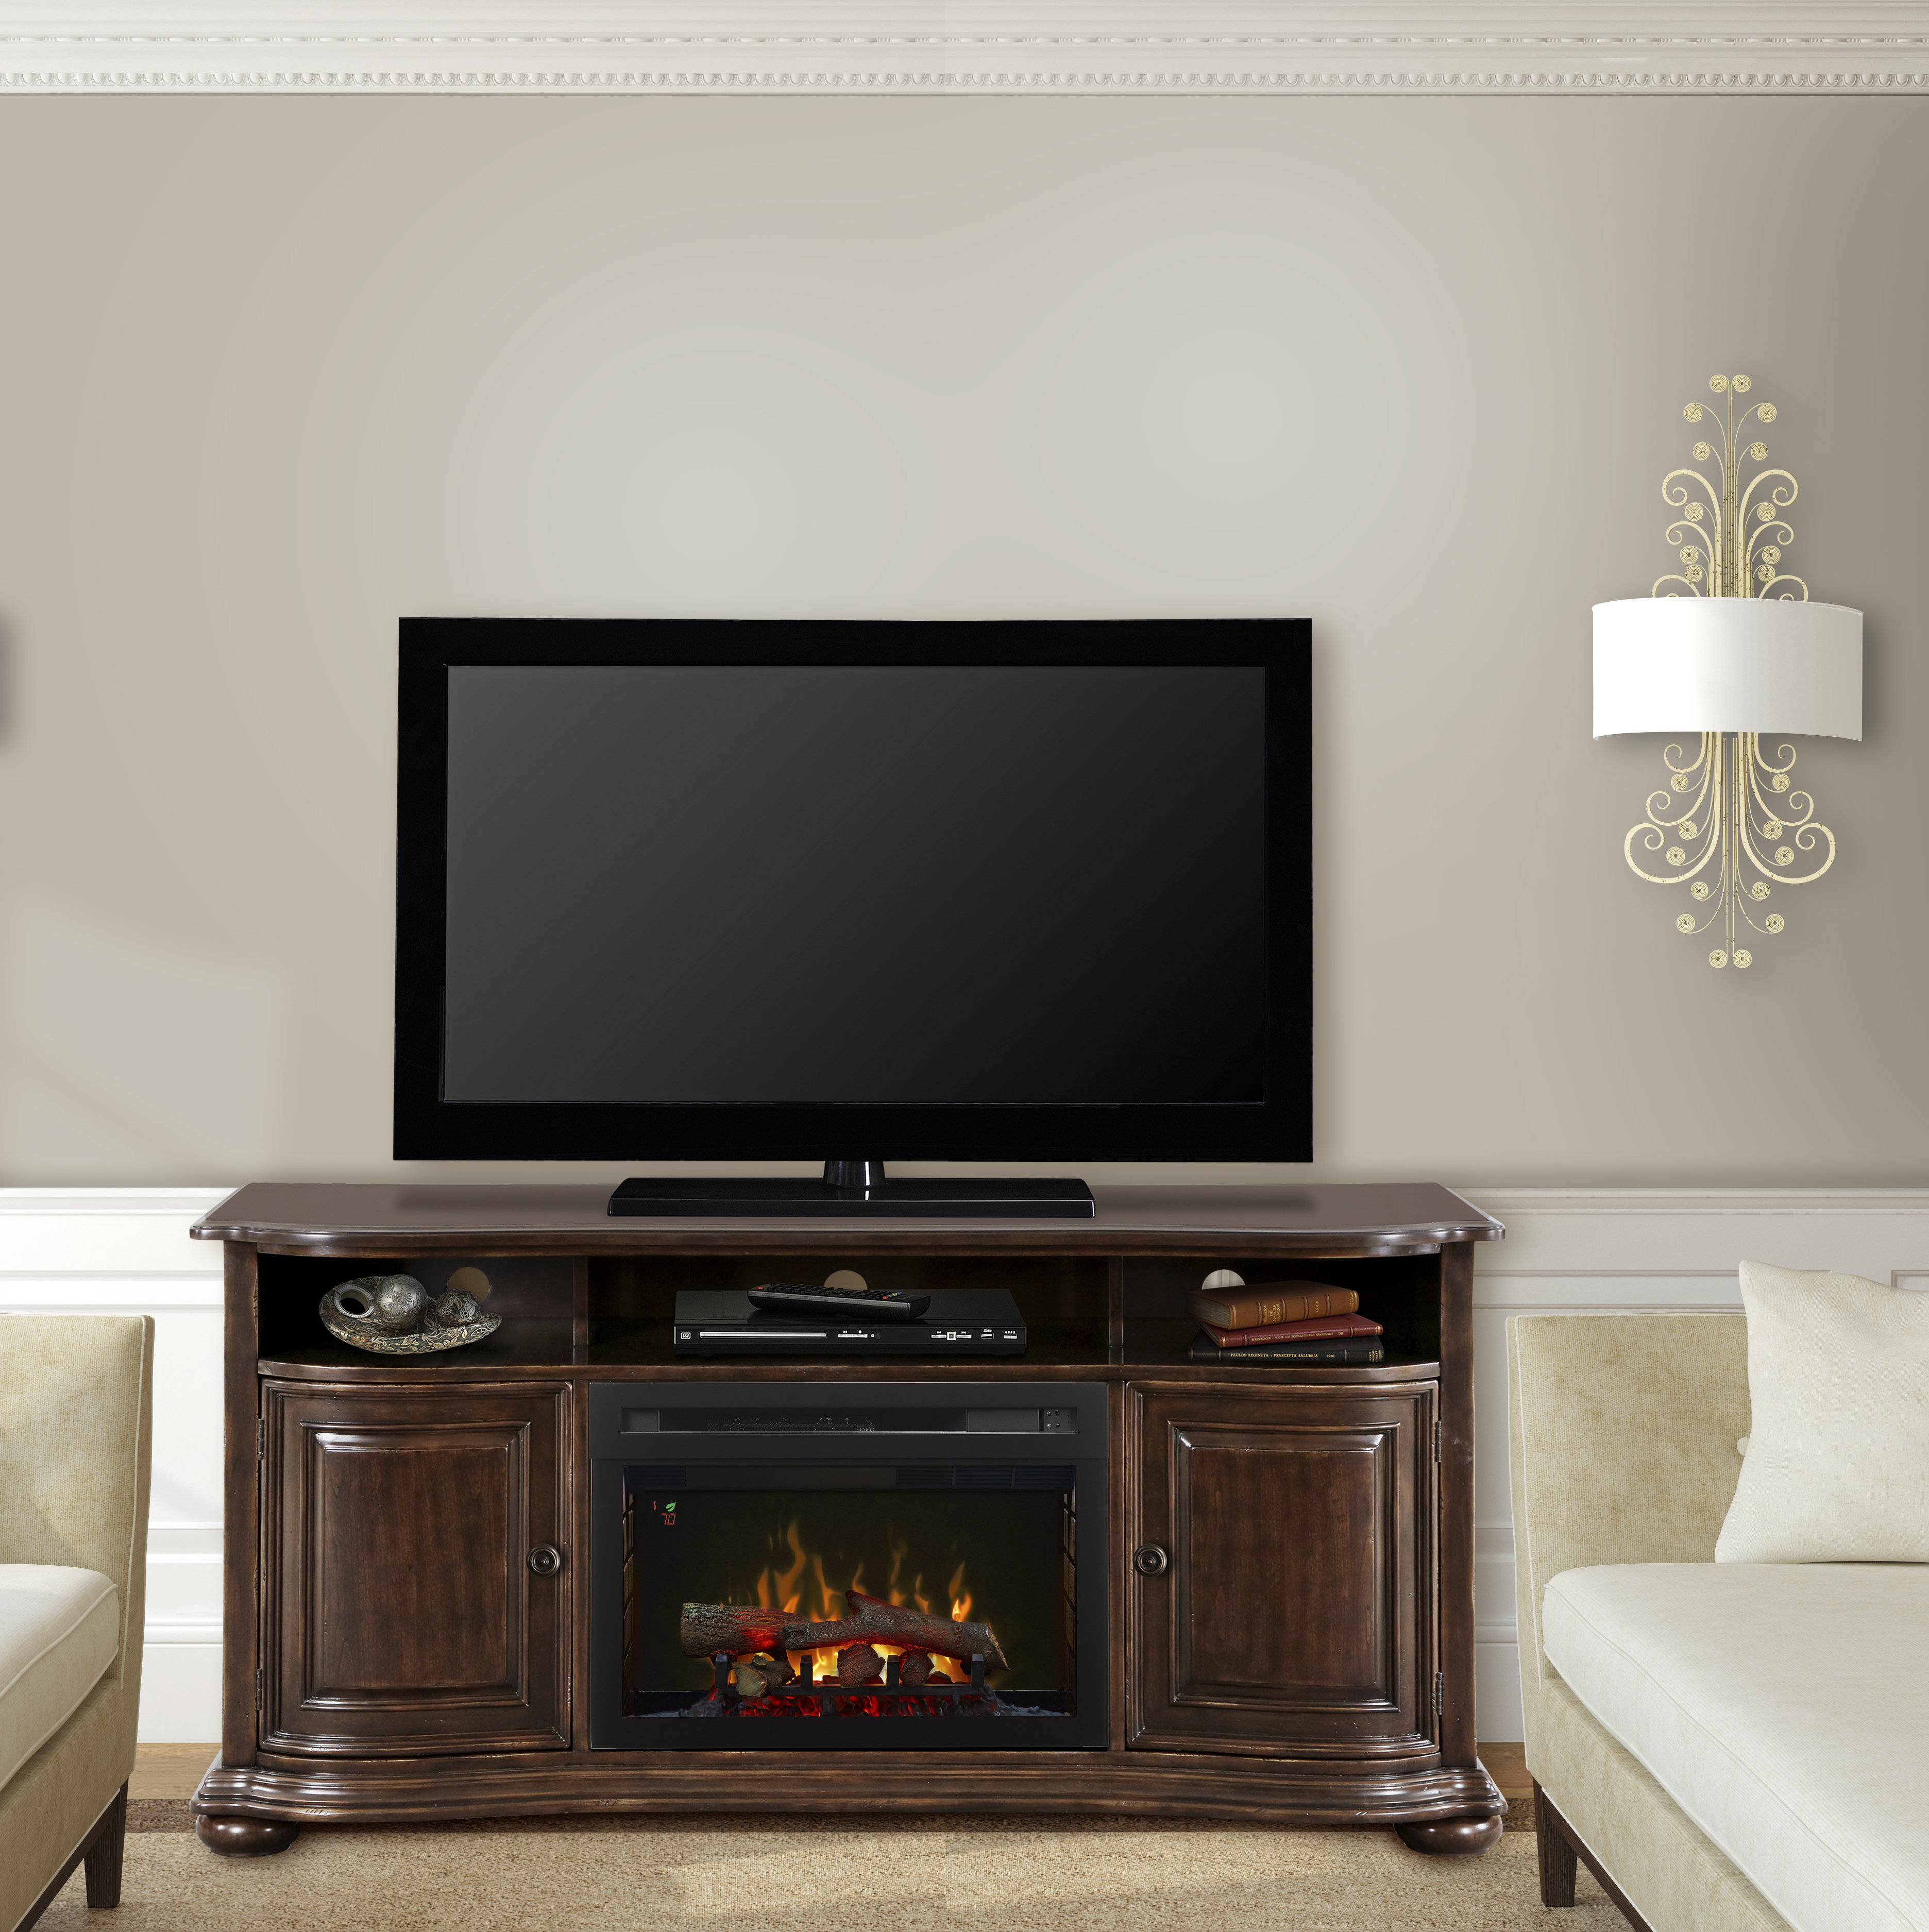 60 69 Inch Tv Stand Fireplaces You'll Love | Wayfair Pertaining To Caden 63 Inch Tv Stands (Photo 6 of 30)